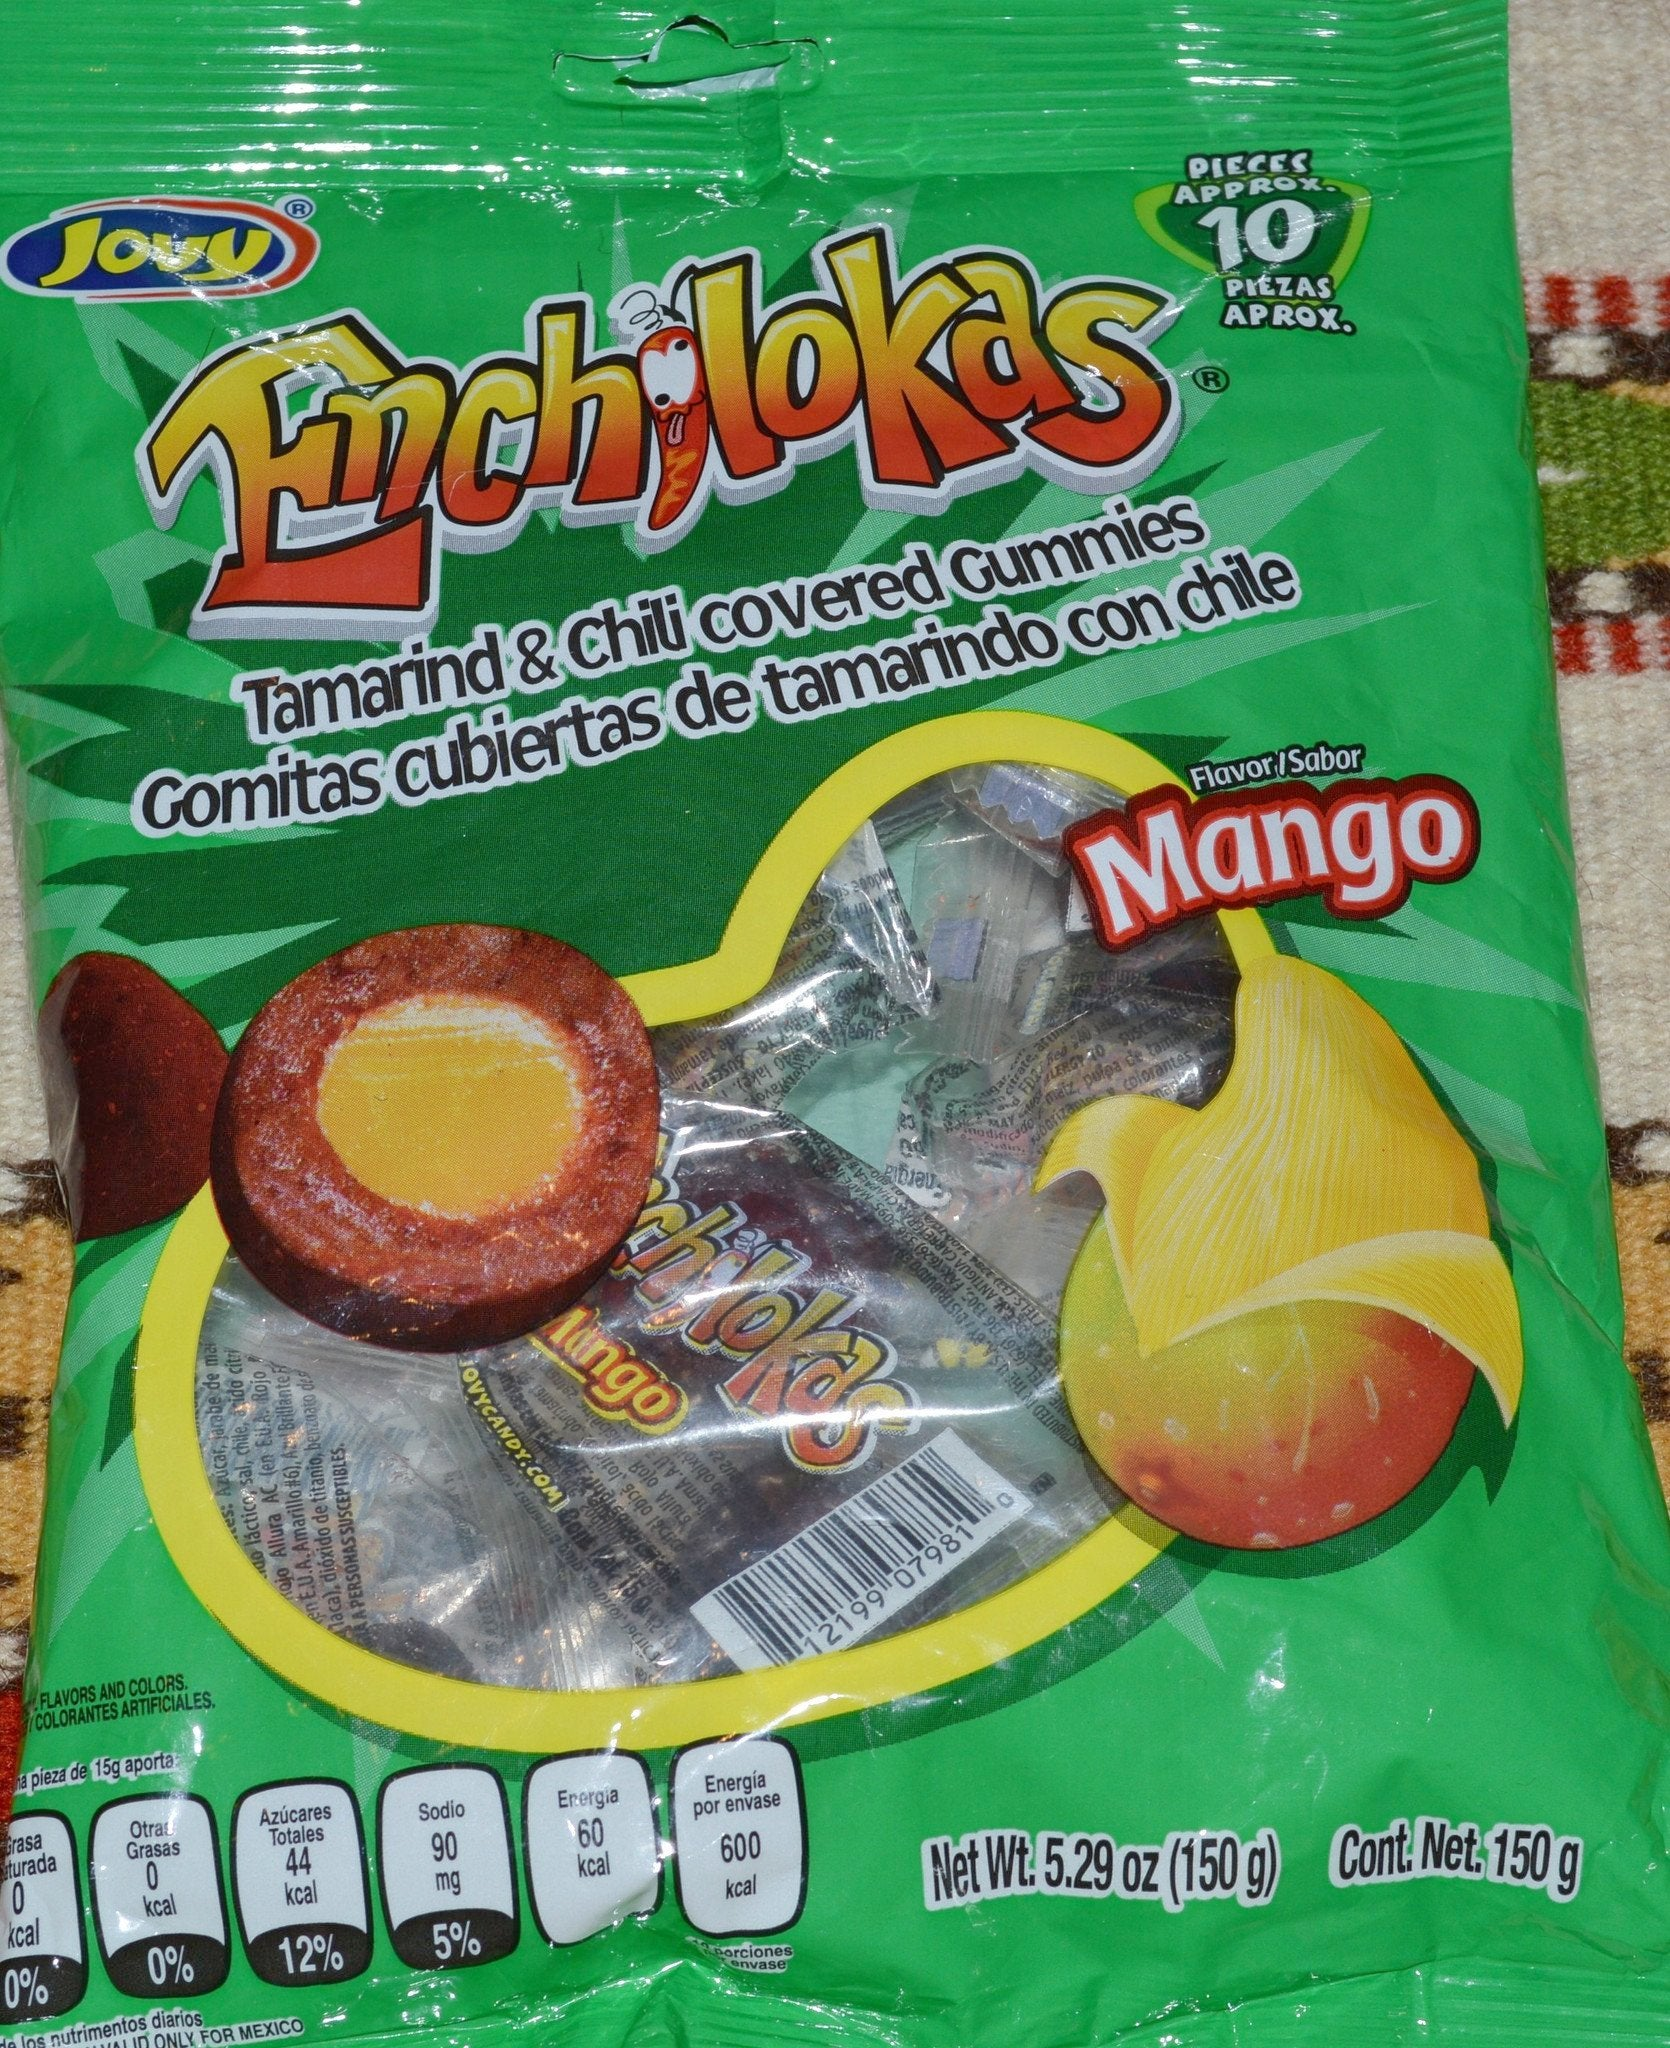 Enchilokas Tamarind Chili Covered MANGO Gummies Mexican Candy Candy ~ Sweets ~ Desserts- Mucho-Mex